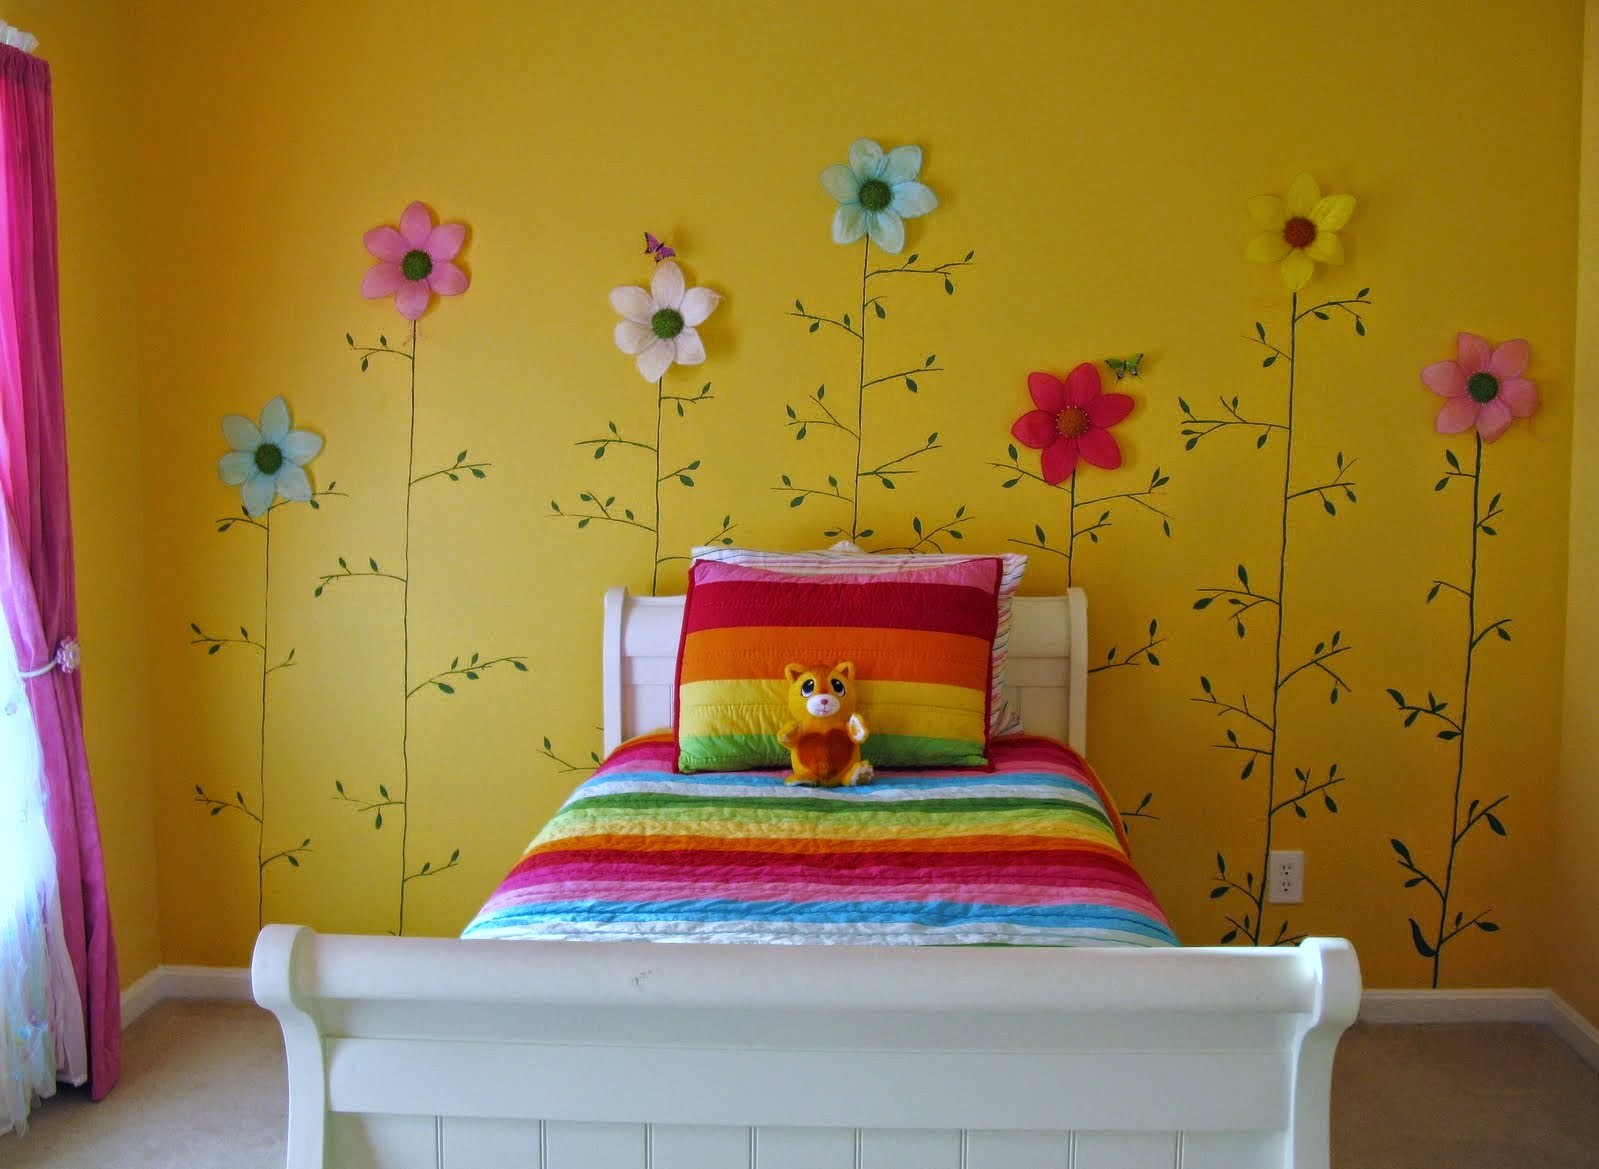 little girls bedroom ideas on a budget. Black Bedroom Furniture Sets. Home Design Ideas